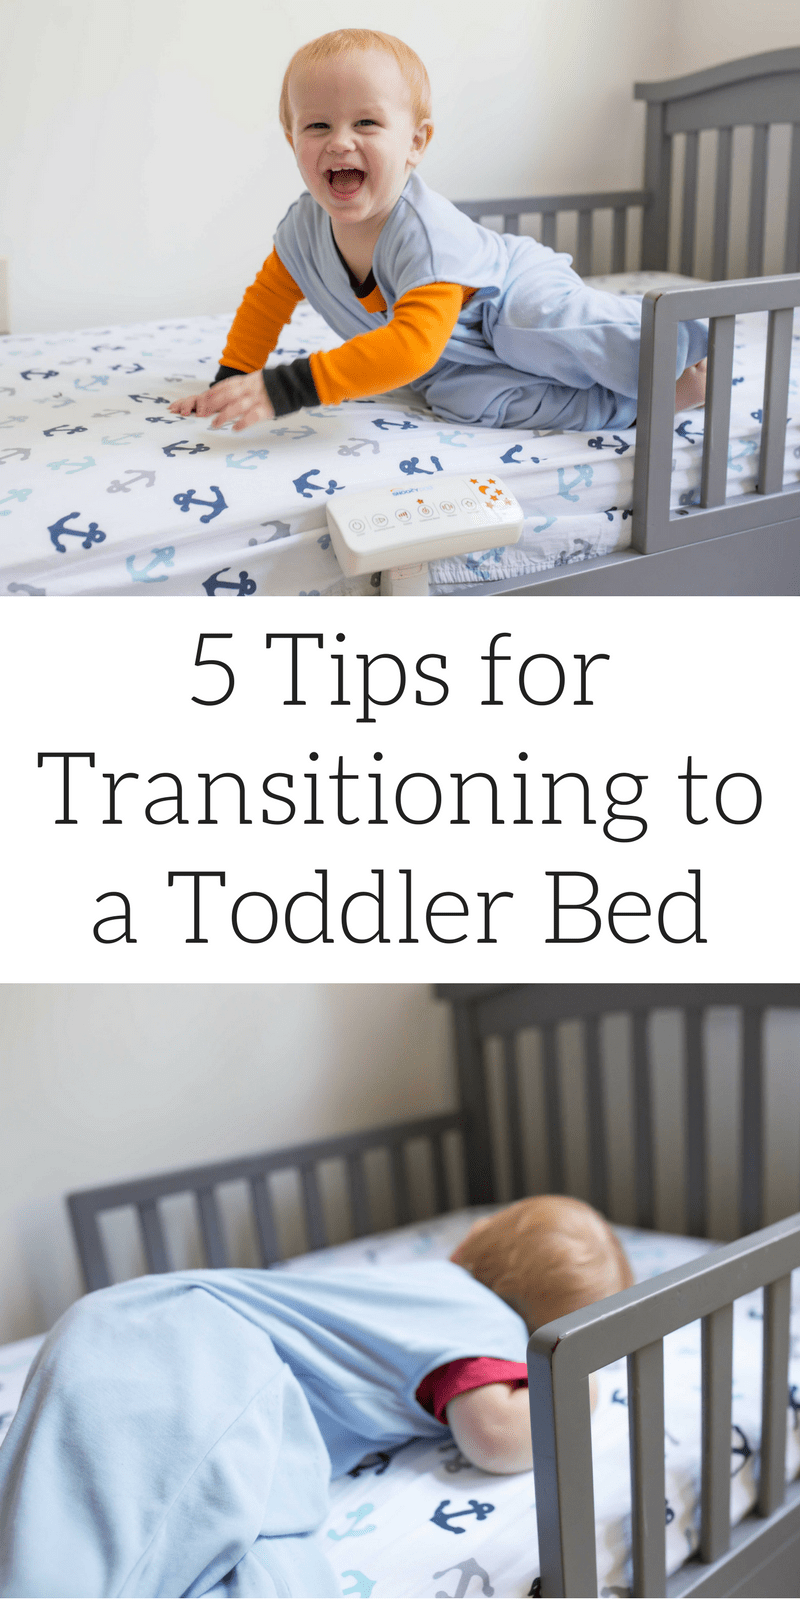 5 tips for tranisitoning your kid from a crib to a toddler bed